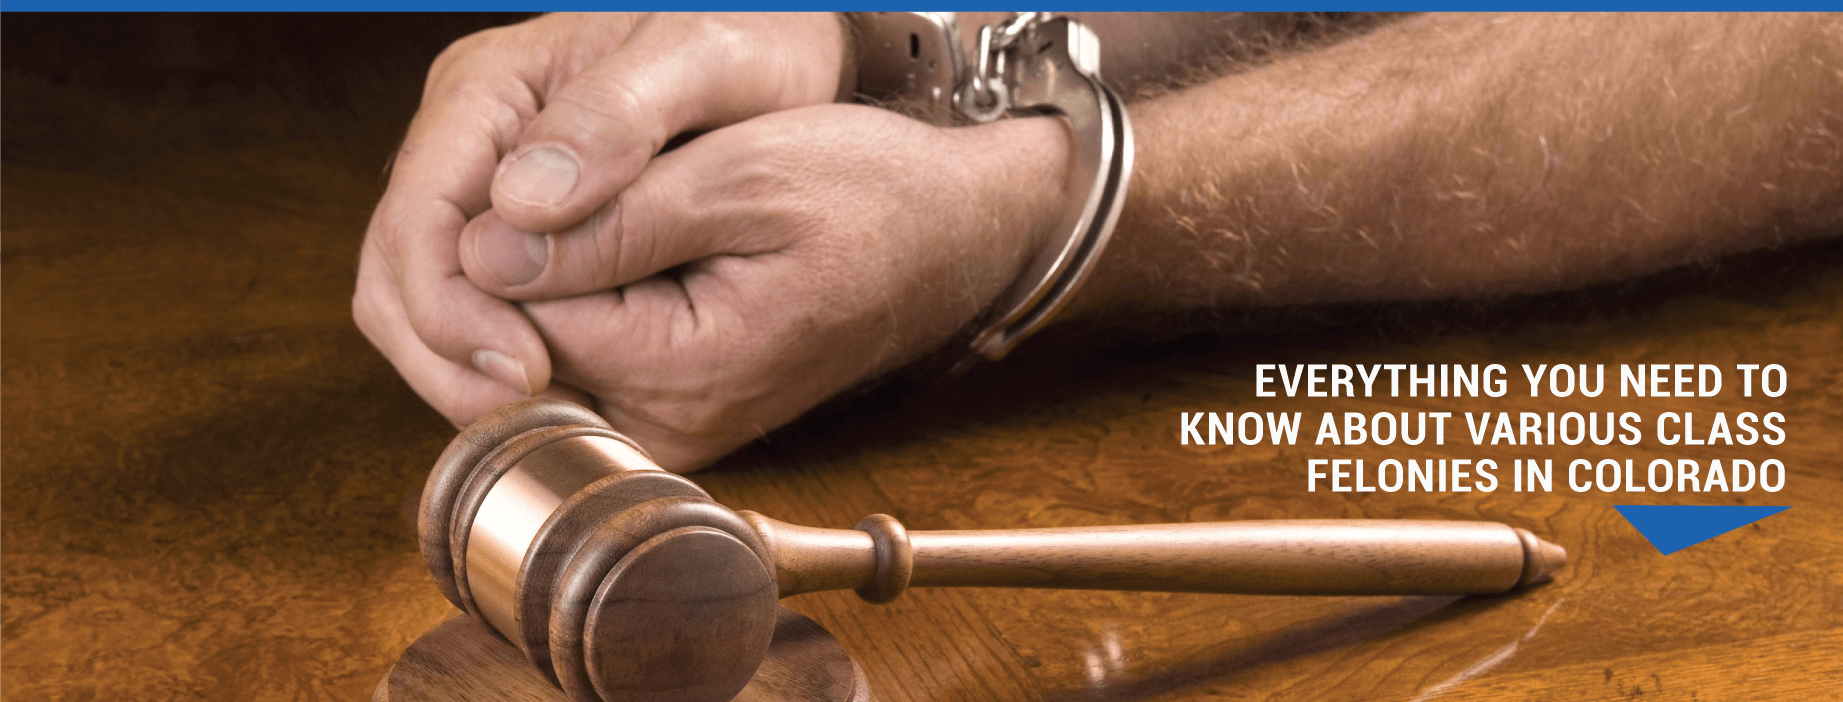 Everything You Need to Know About Various Class Felonies in Colorado